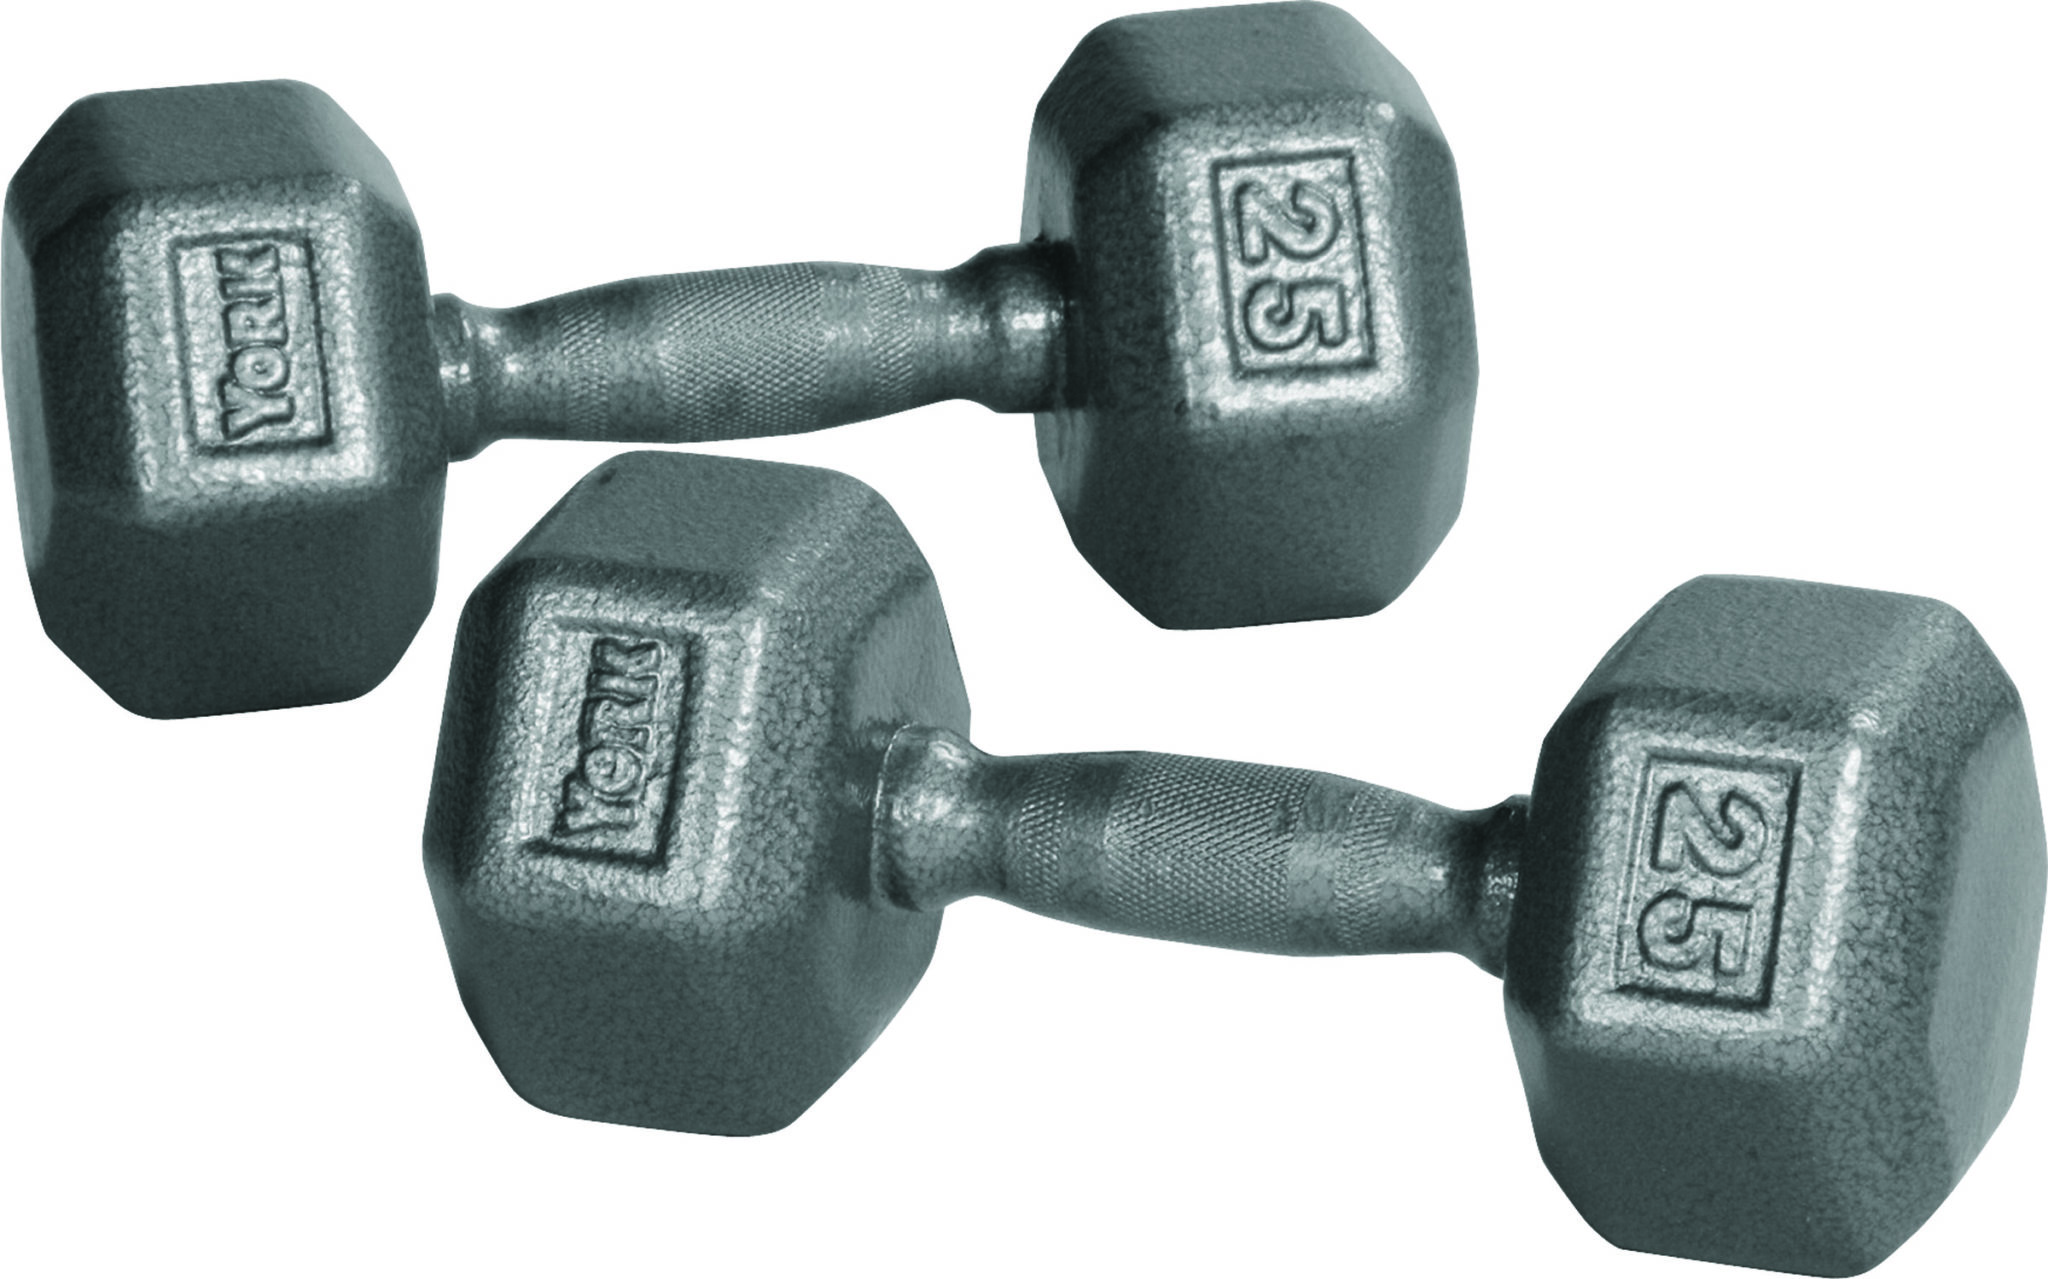 Iron Pro Hex Dumbbells - York Barbell